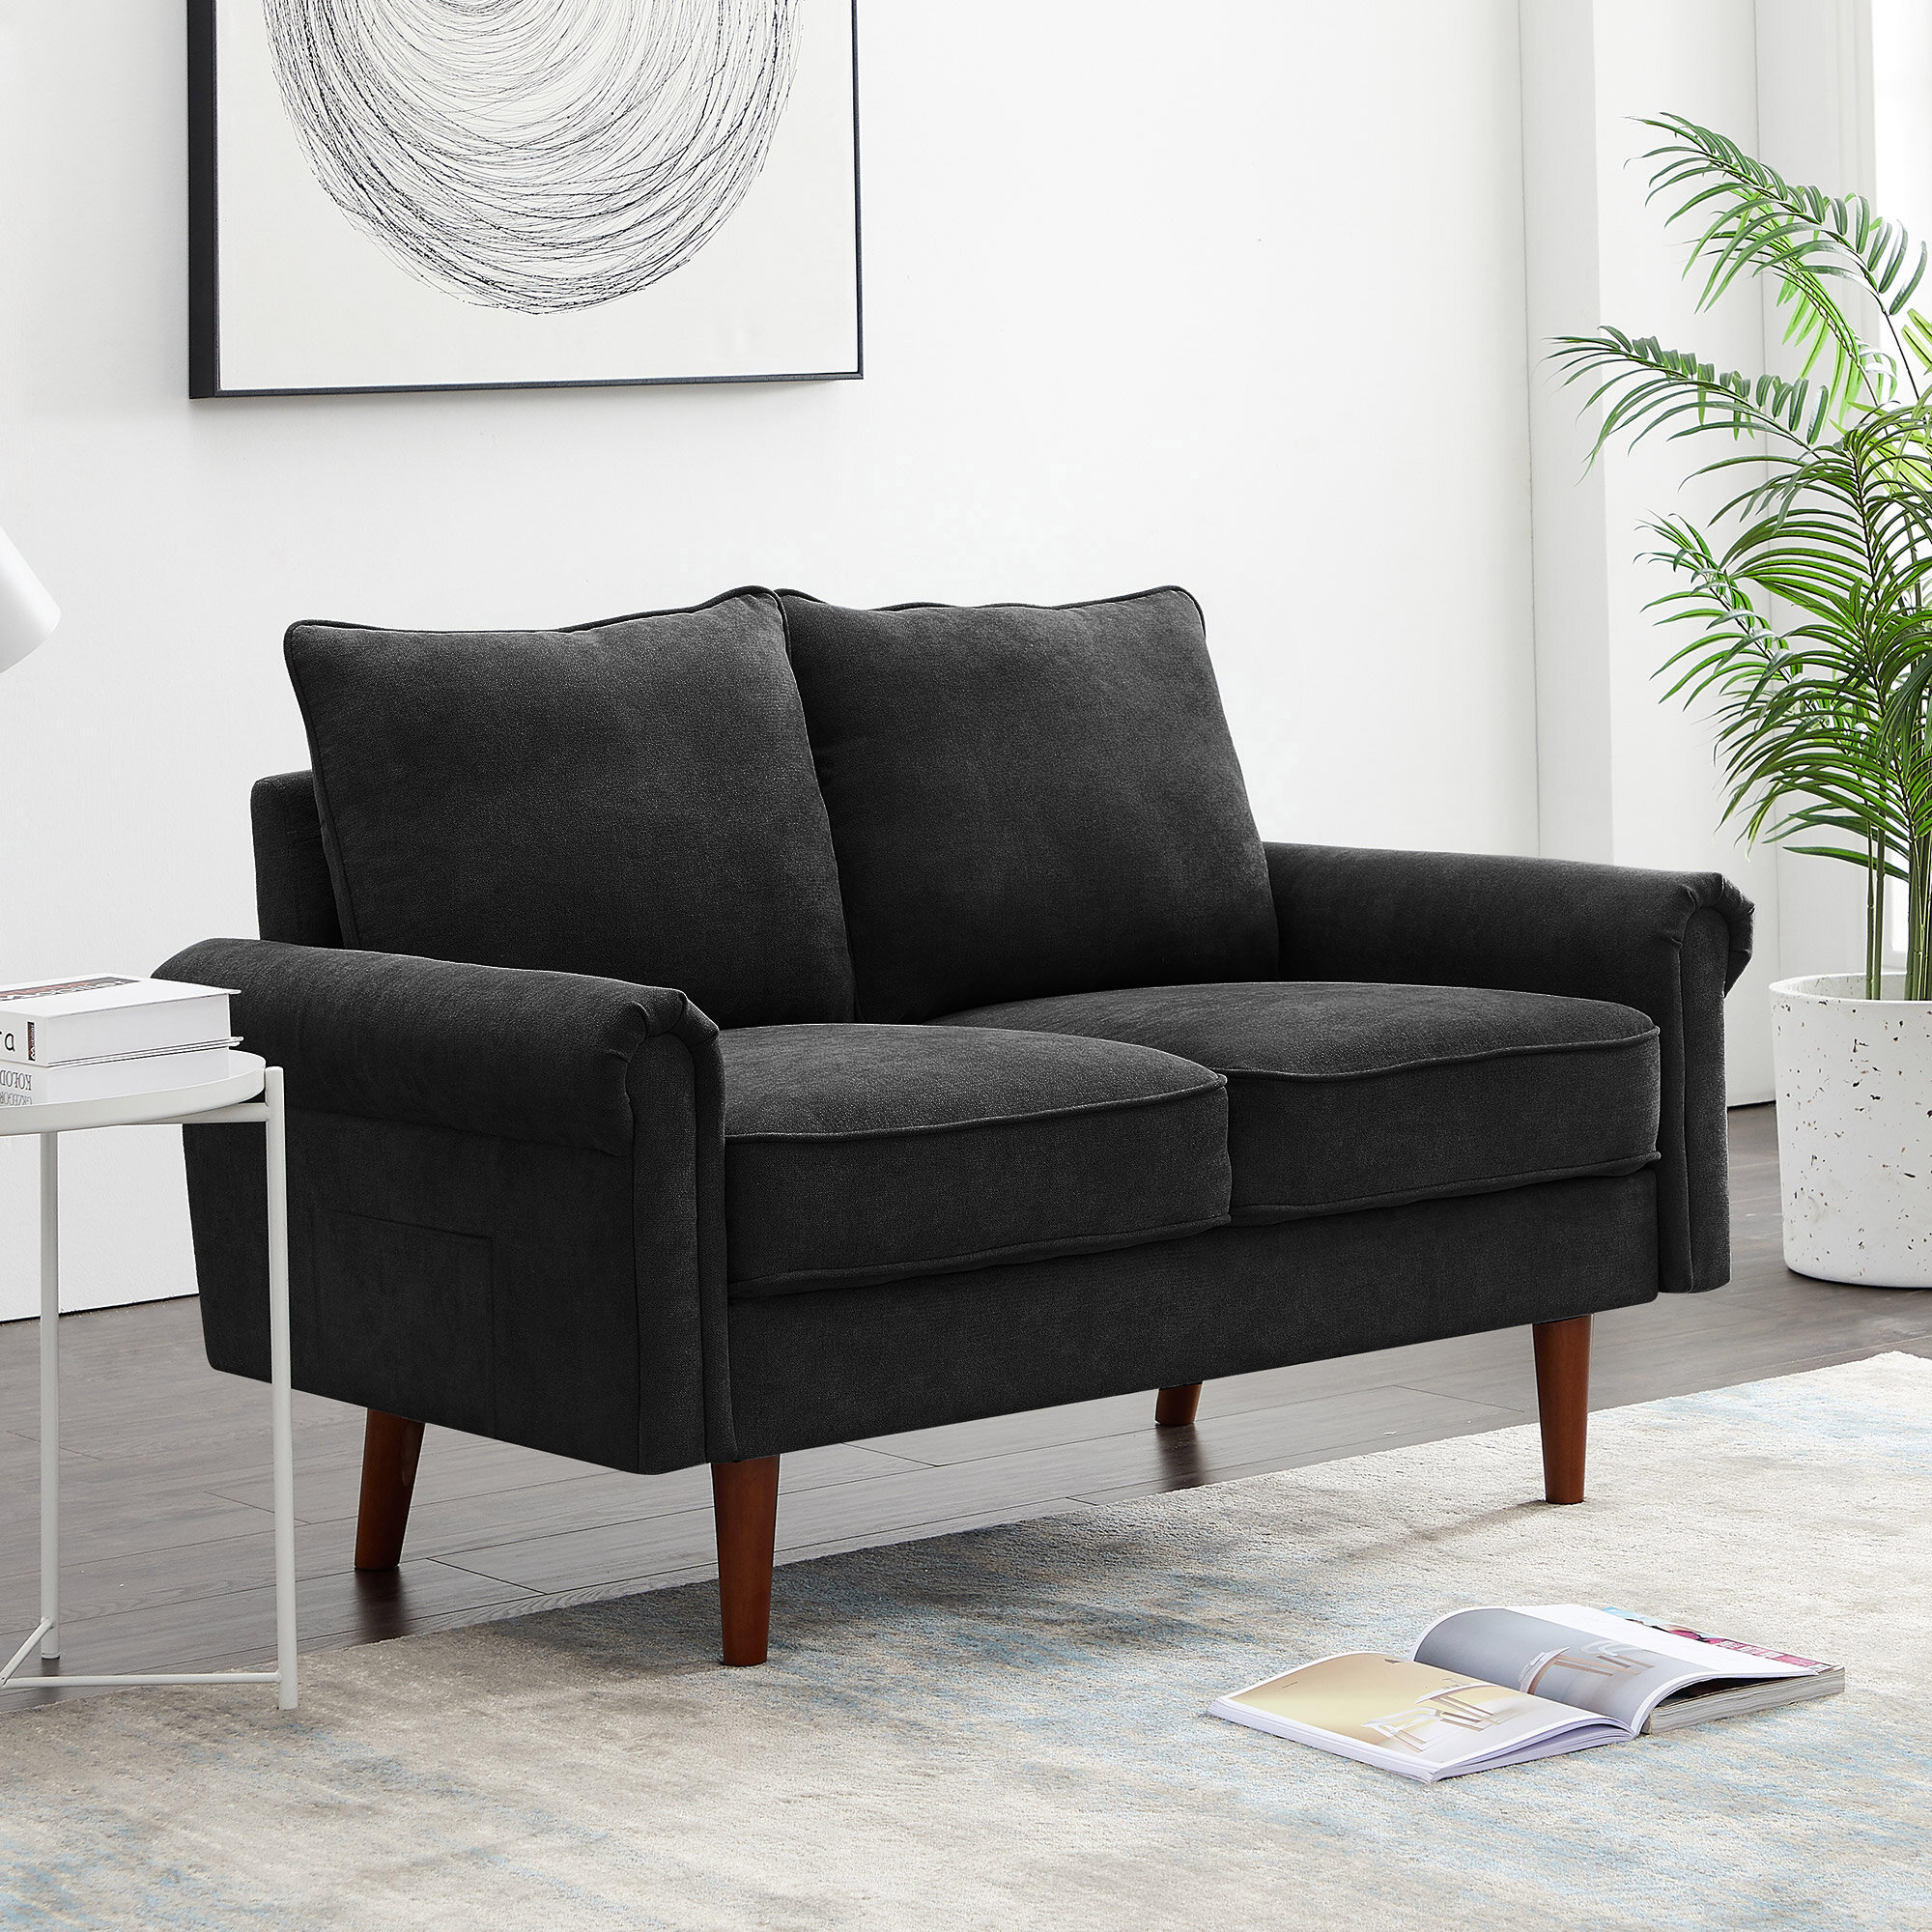 Picture of: Red Barrel Studio 2 Person Seat Sofa Sectional Sofa Wooden Frame Couch For Home Living Room Wayfair Ca